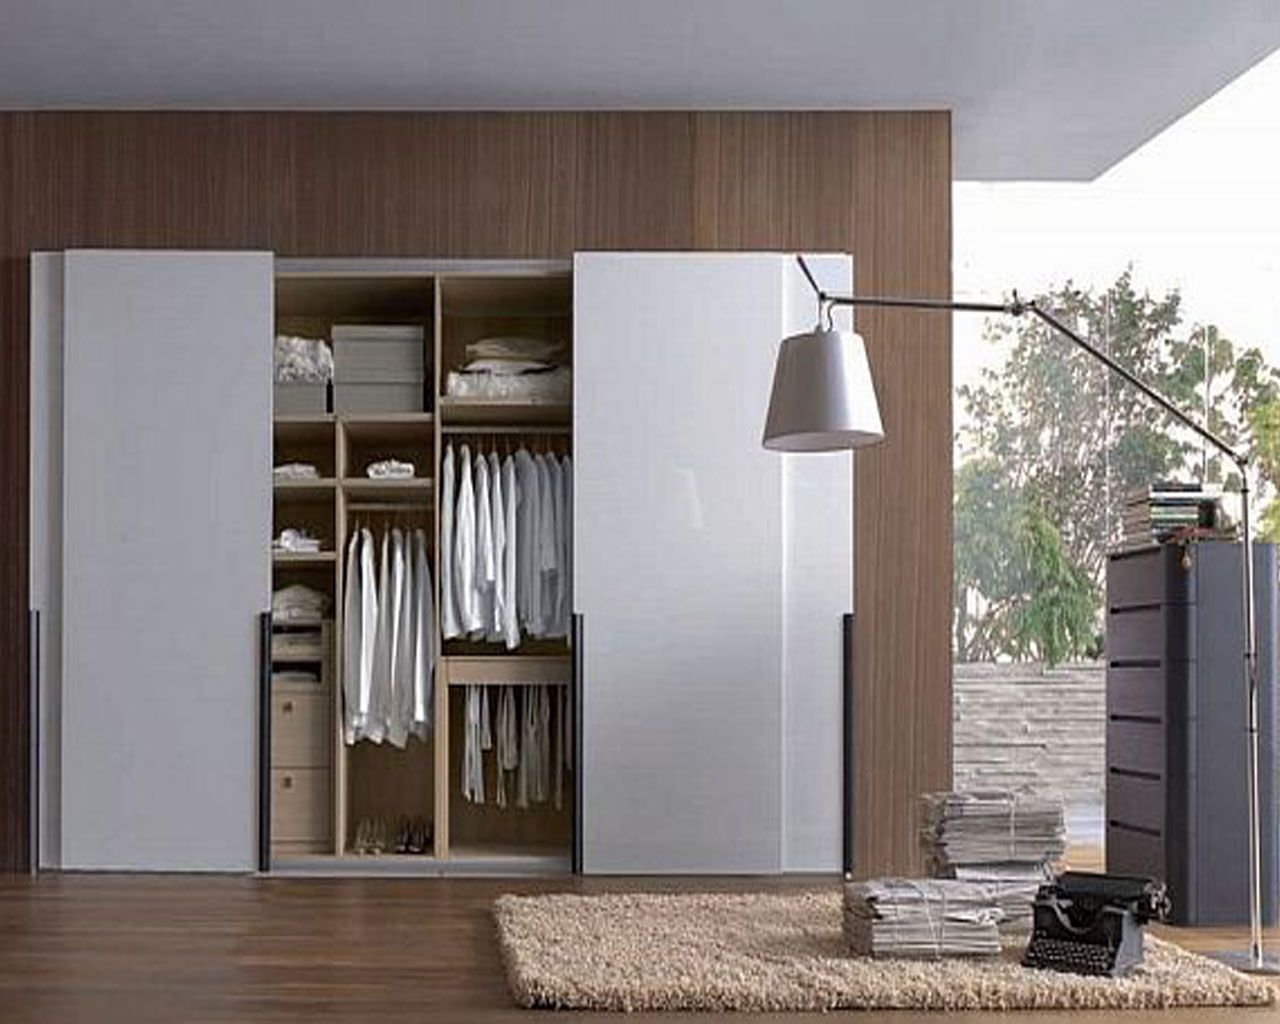 Custom Sliding Wardrobe Doors Design Ideas For Bedroom Sliding Wardrobe Doors Wardrobe Doors Modern Sliding Doors